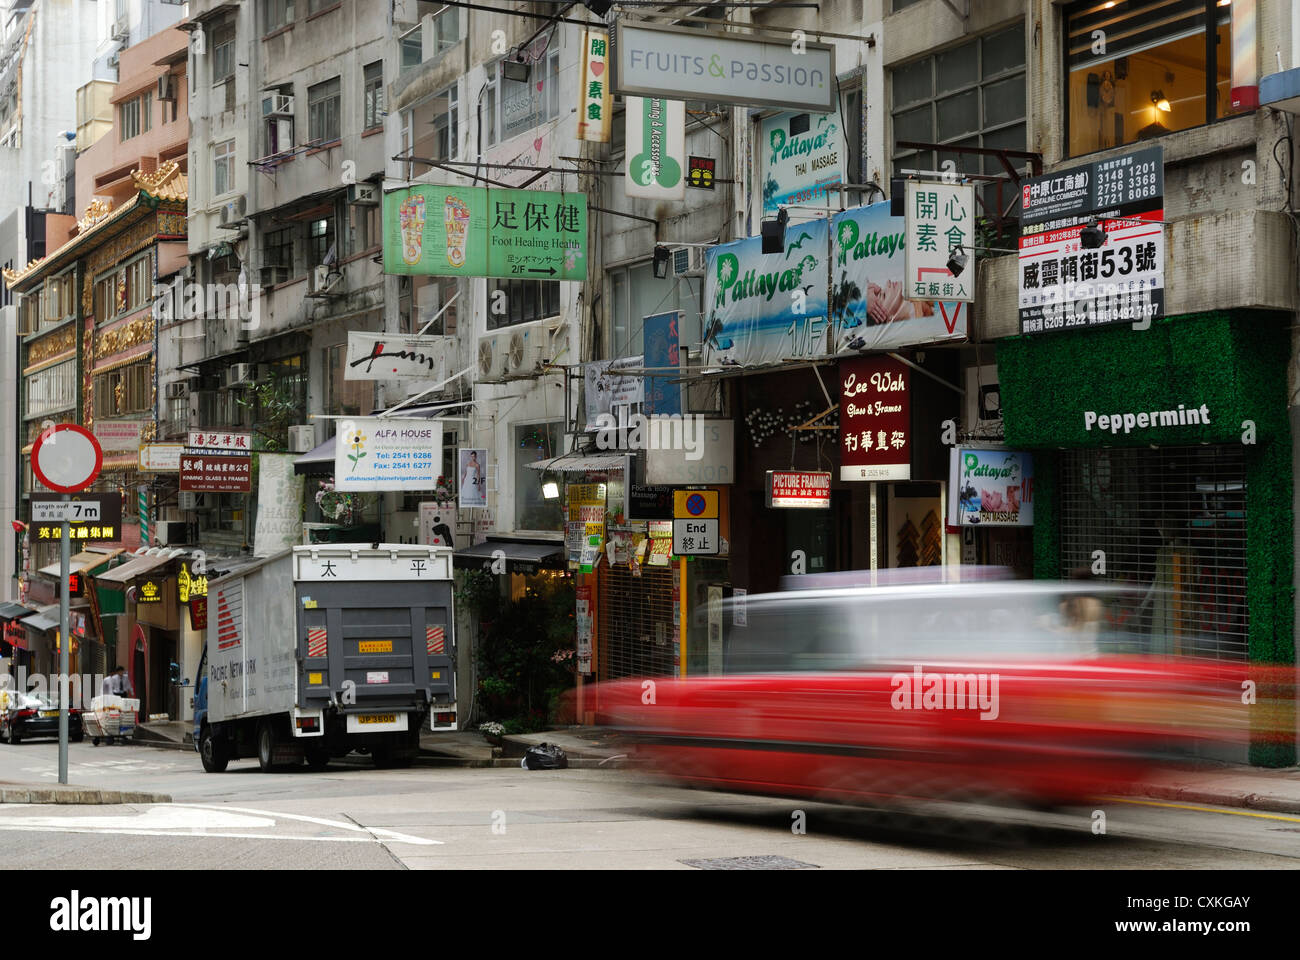 Blurred red Taxi Hong Kong Central district. - Stock Image